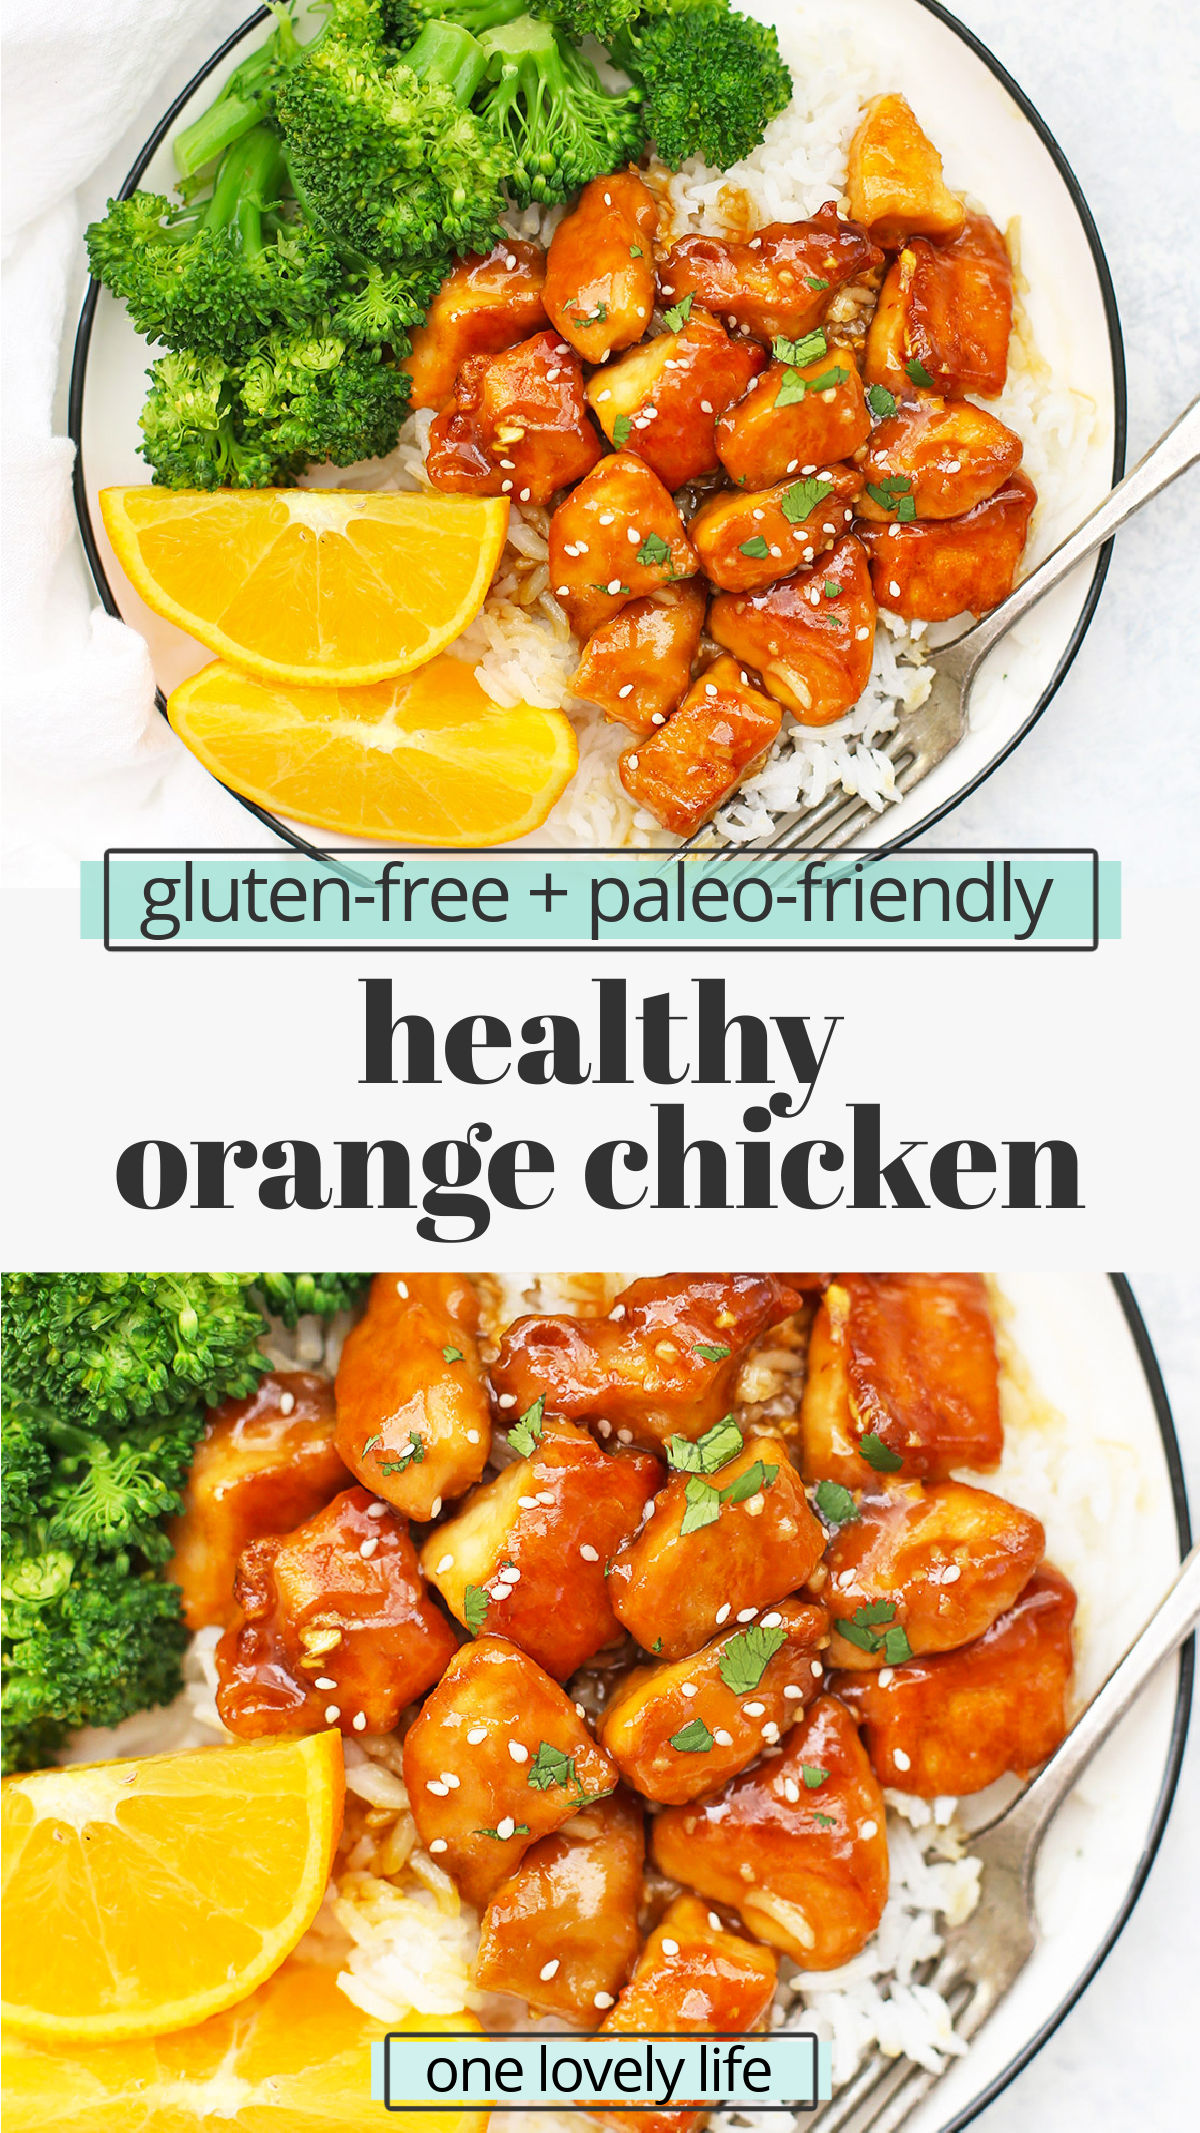 Healthy Orange Chicken (Gluten Free, Paleo Friendly) - Our whole family loves this homemade orange chicken. The chicken is crispy and the sauce is delicious! // Orange chicken recipe // paleo orange chicken // gluten free orange chicken // healthy dinner // takeout fake out #orangechicken #chicken #paleo #glutenfree #healthy #healthydinner